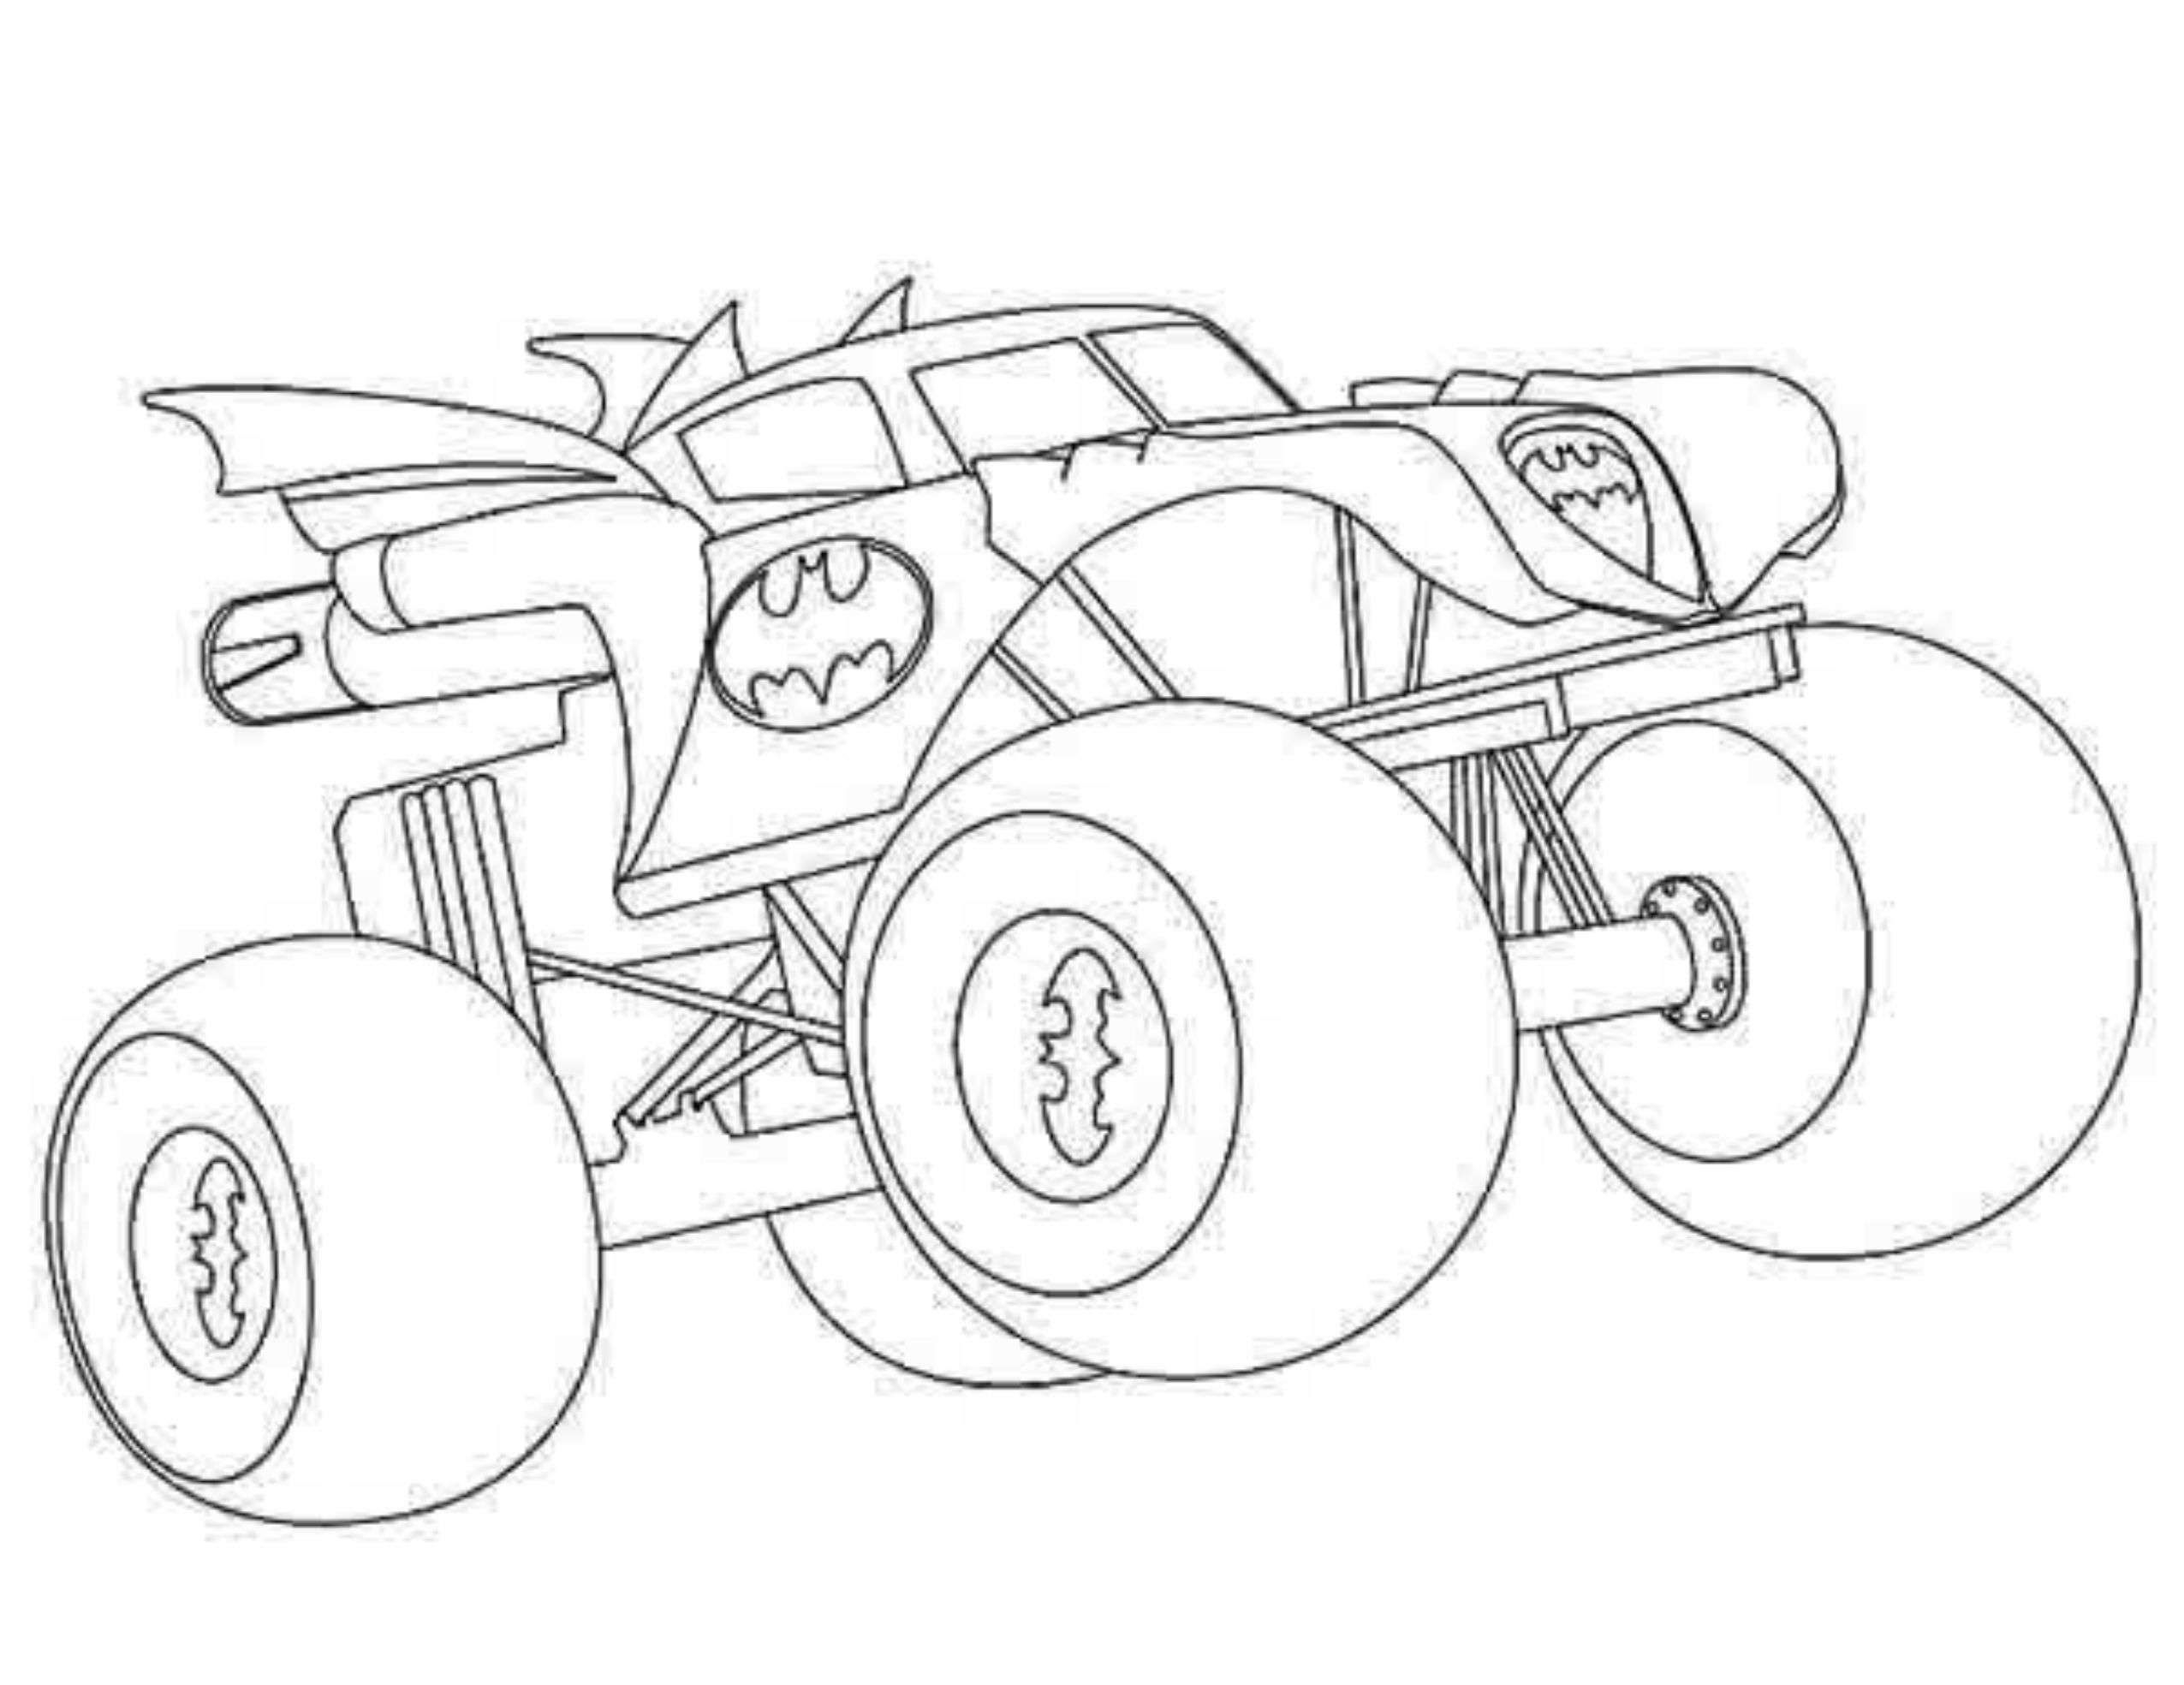 Toy Truck Coloring Pages At Getdrawings